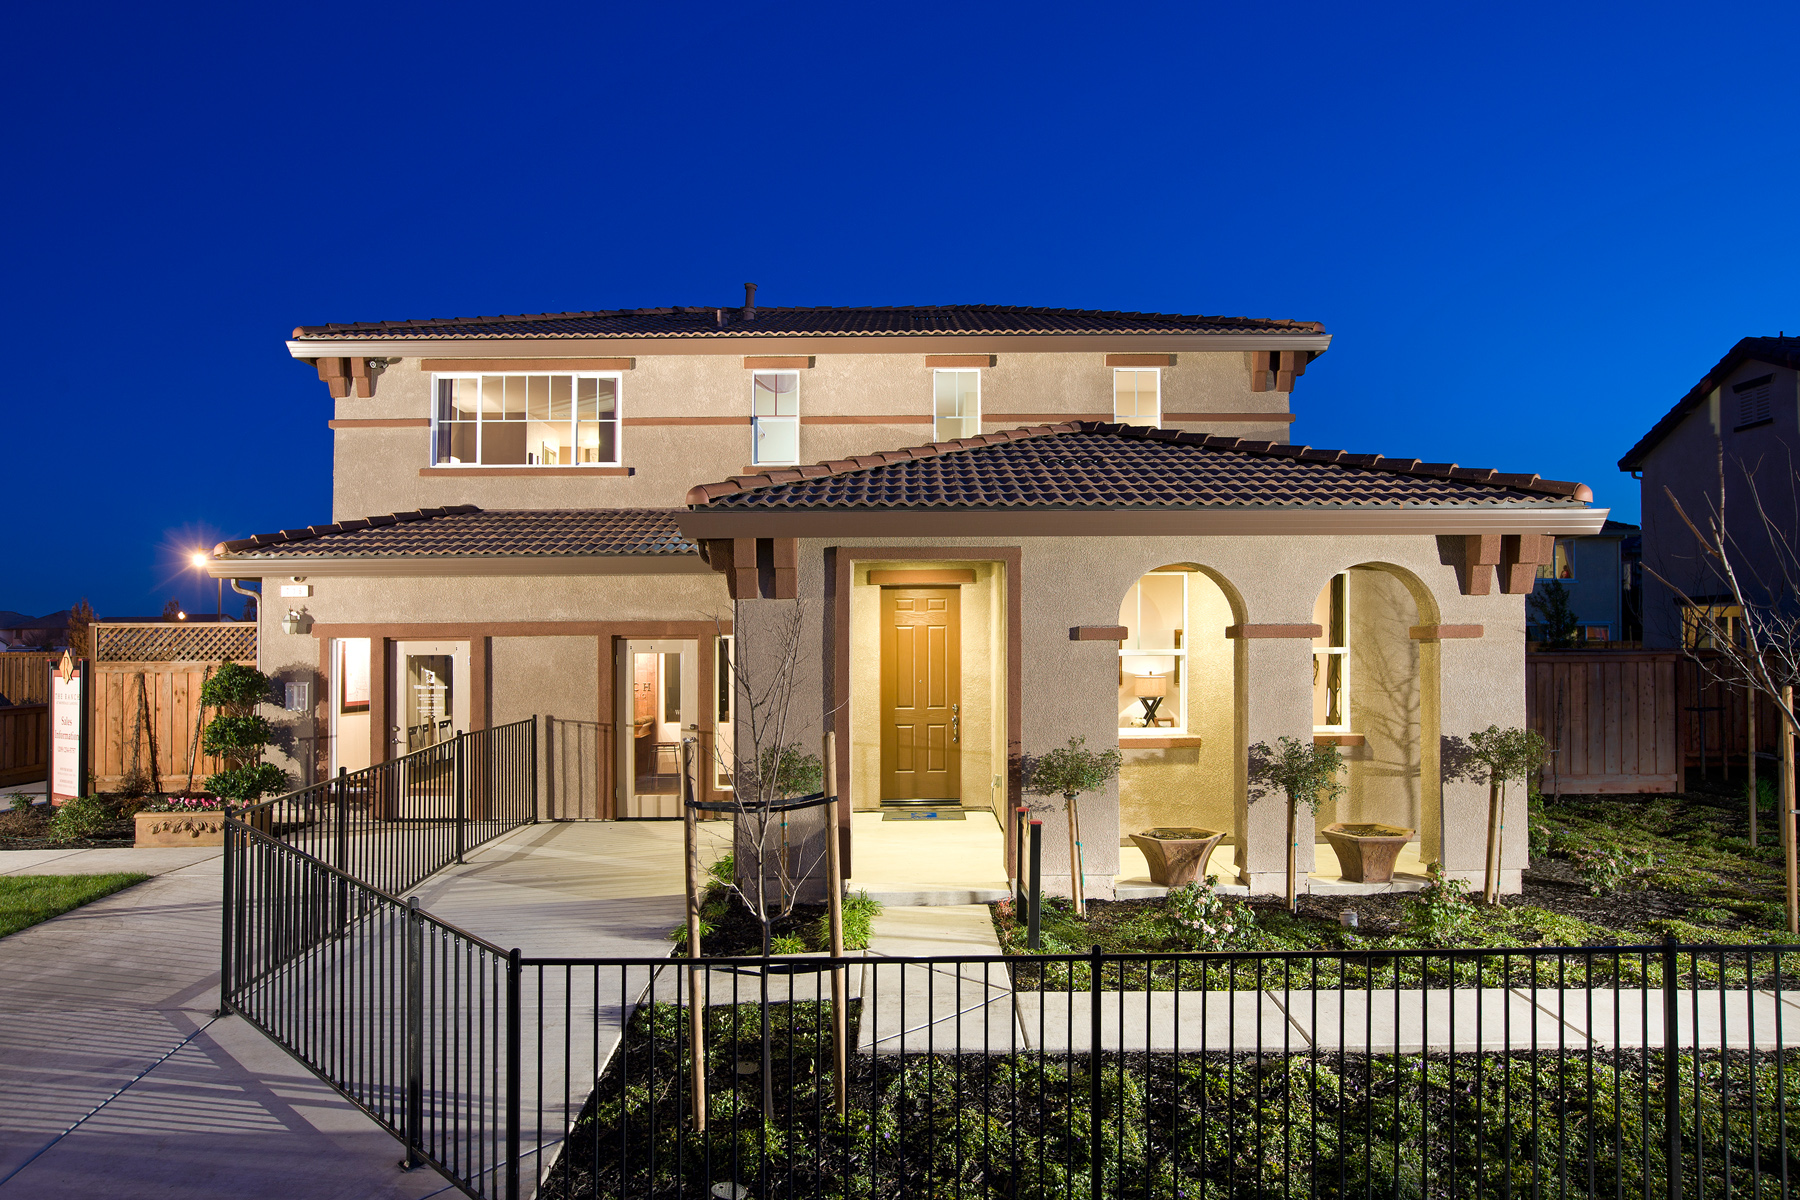 the ranch, model homes for sale, lathrop new homes